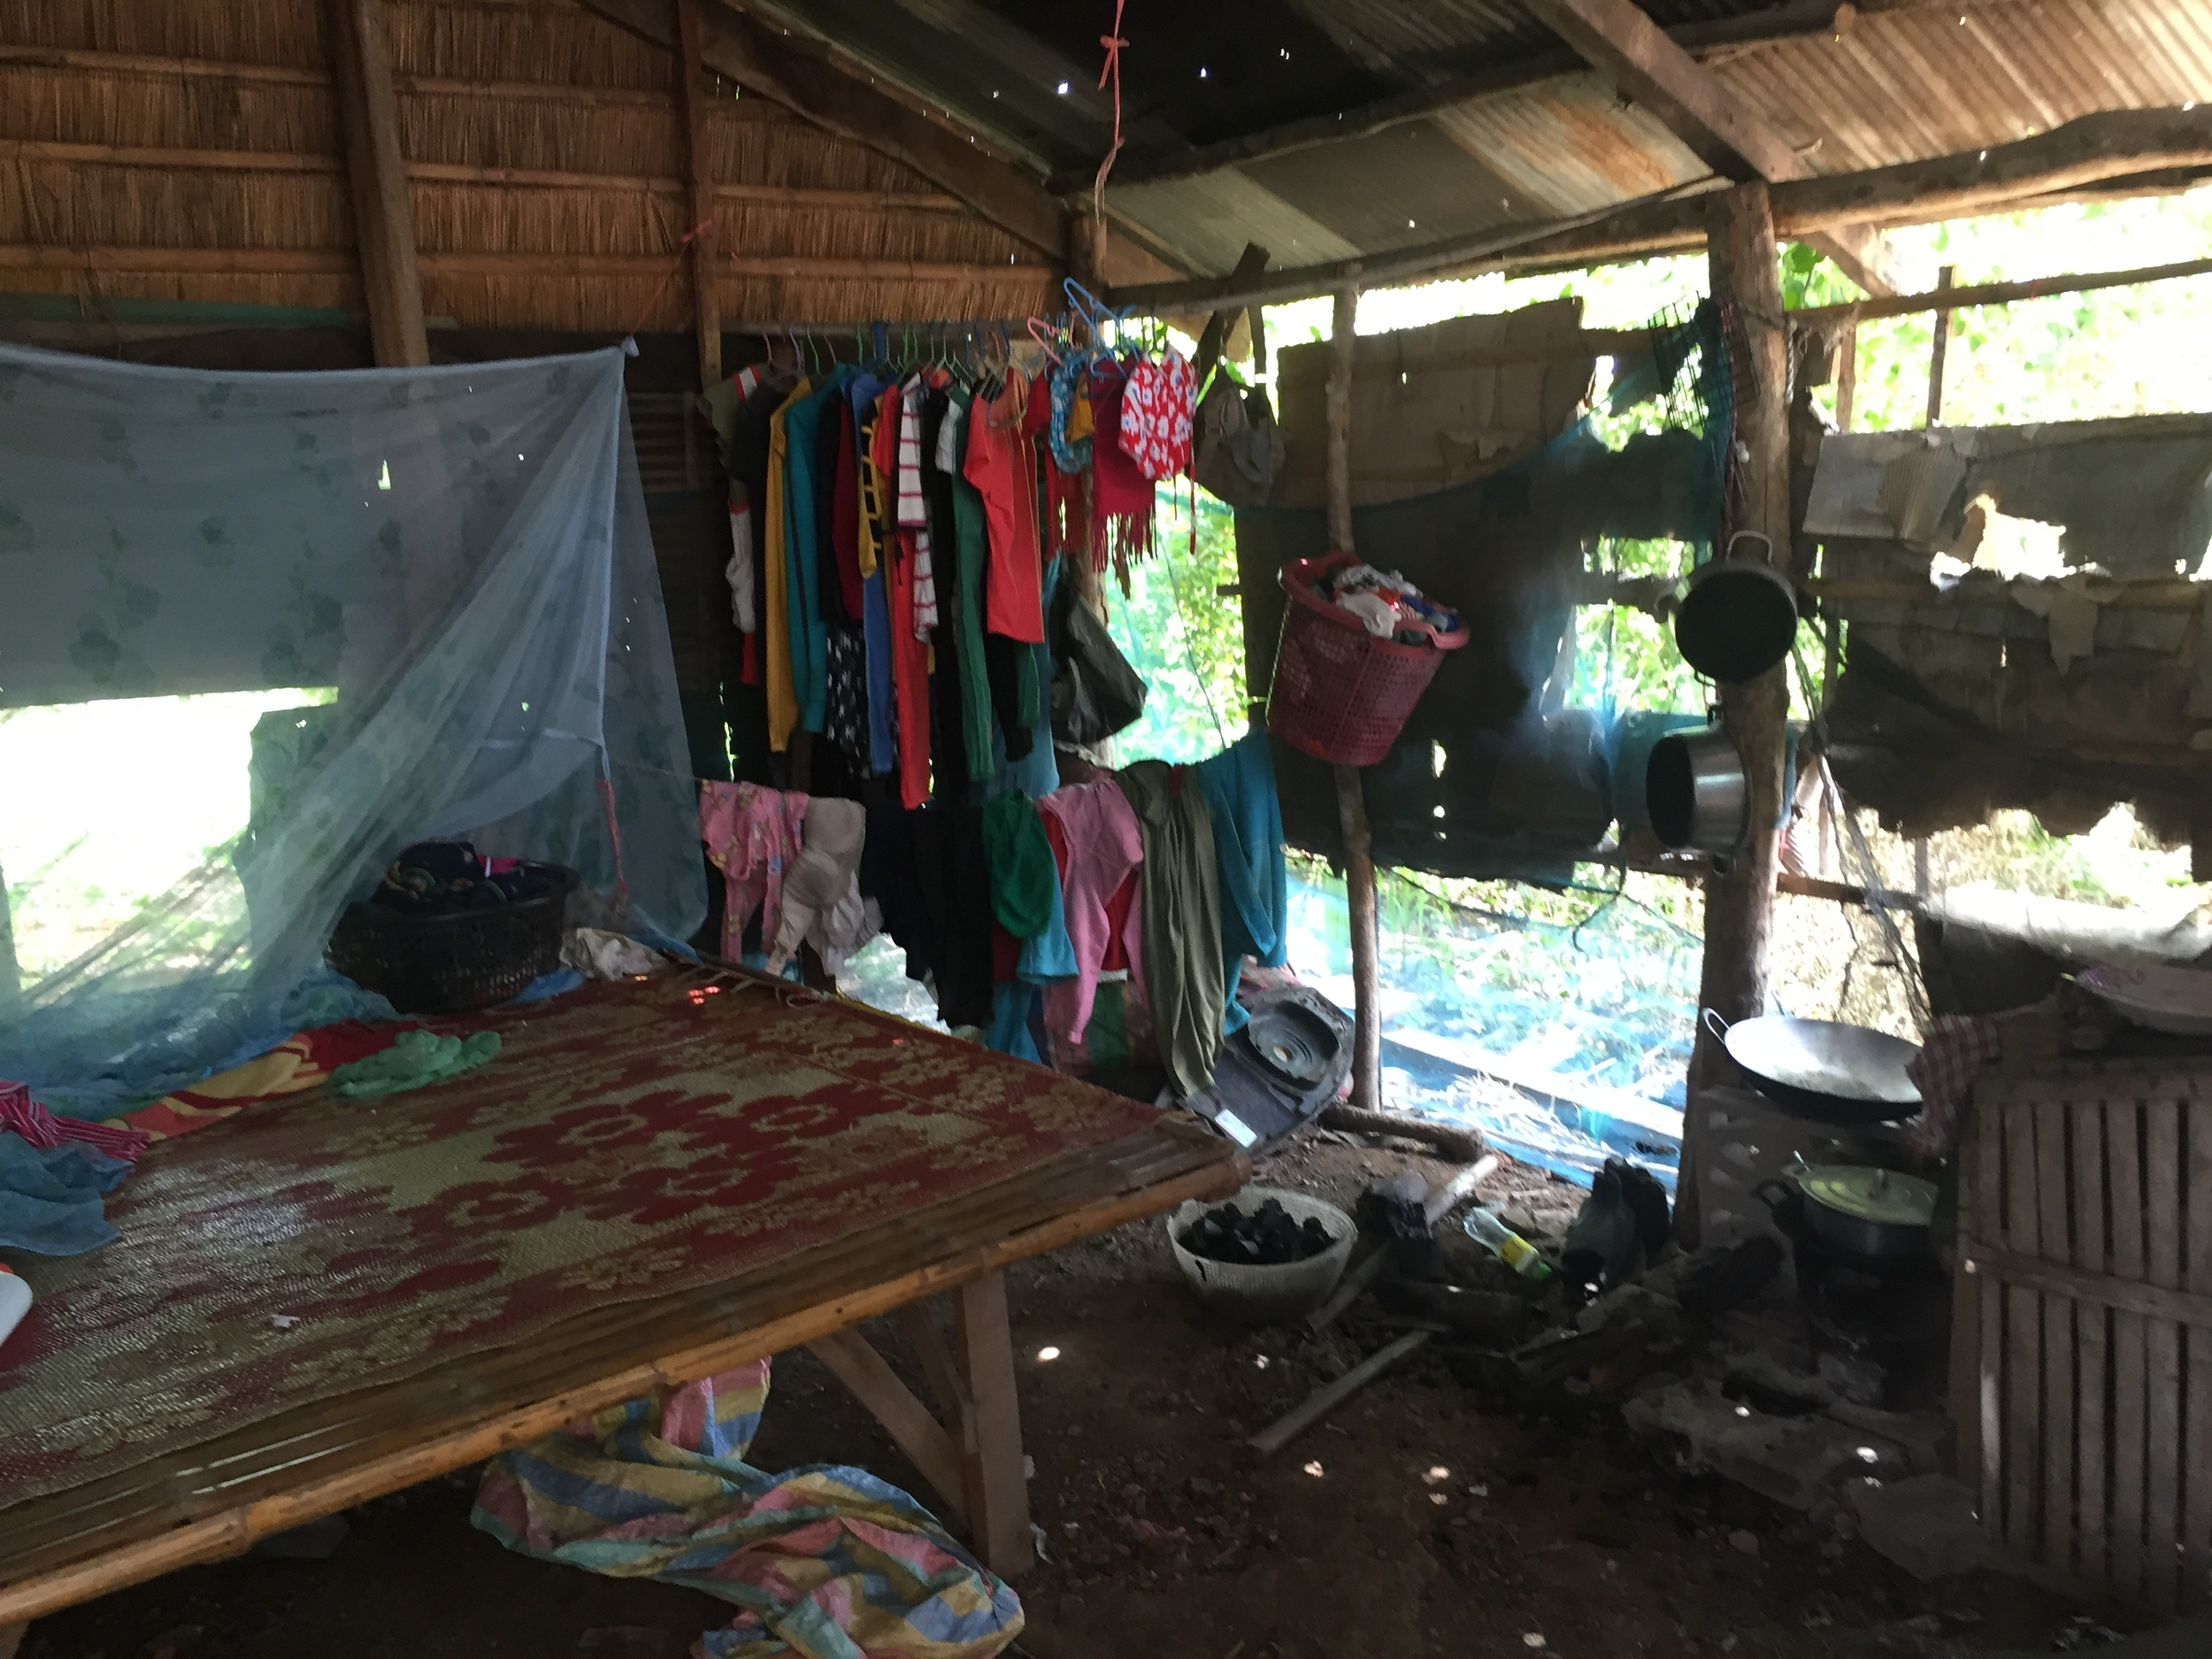 Inside Pai's hut and the raised bed she and her daughter share.